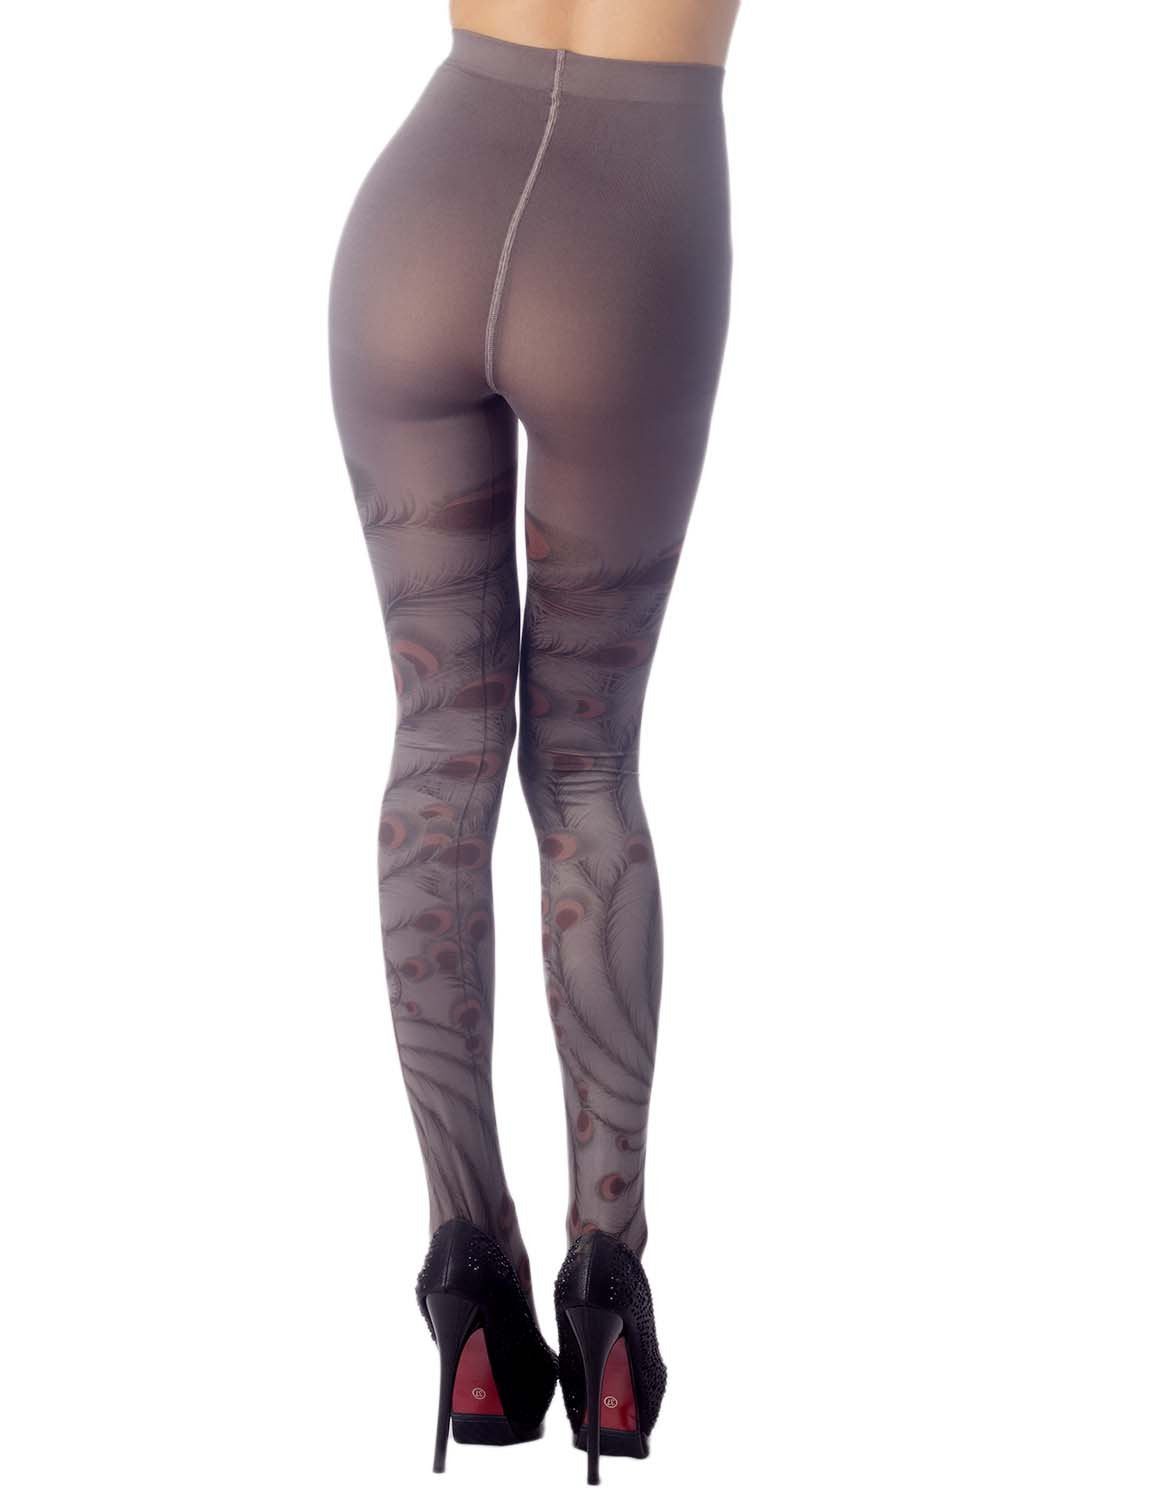 Women's Stocking Peacock Tail Print Charming Sheers Seam Tights Pantyhose, Size: One Size, Warm Grey